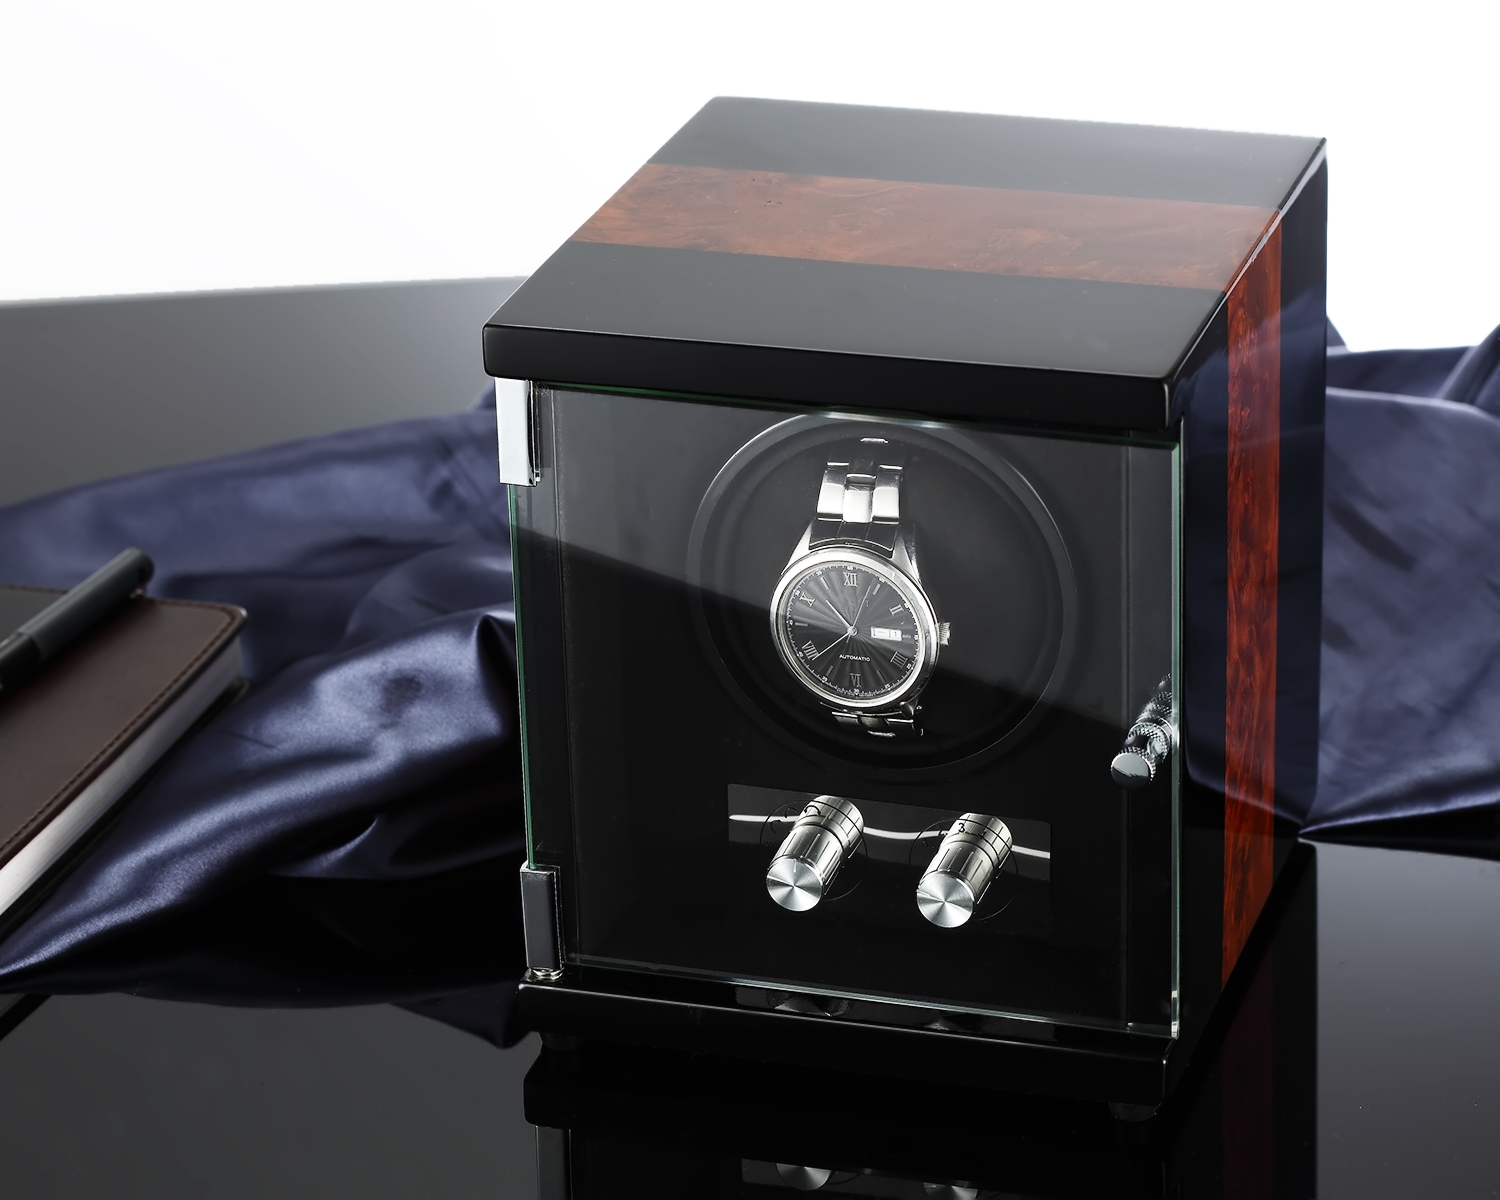 CHIYODA Automatic Single Watch Winder with Glass Cover Patchwork Patterns